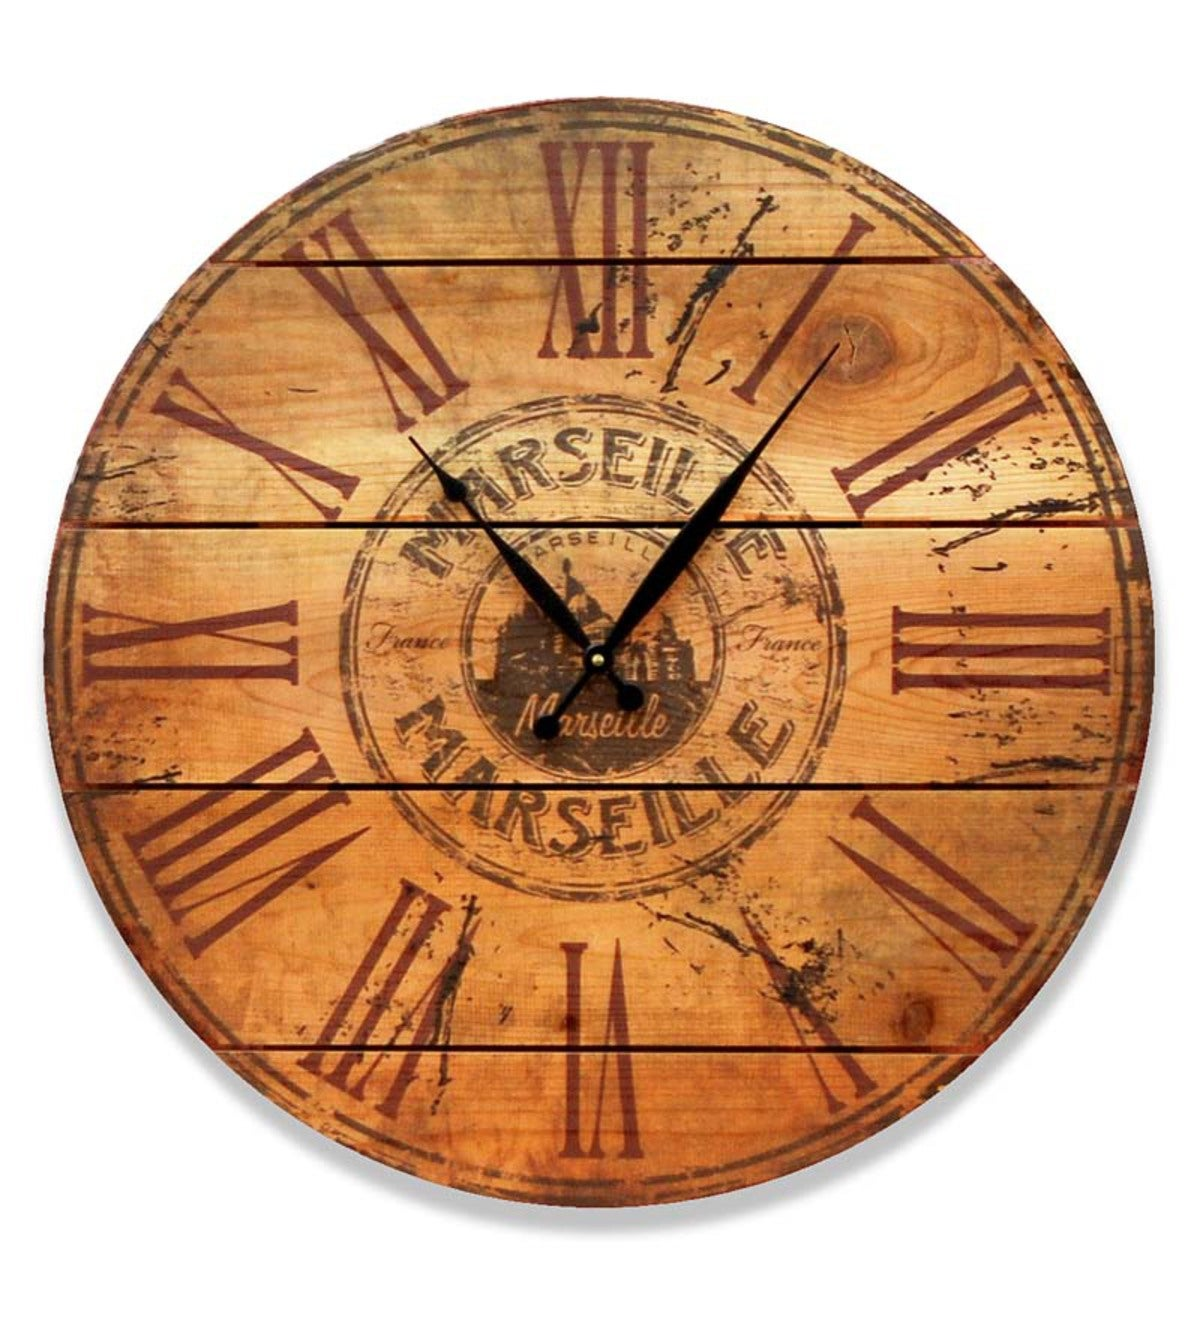 Marseille Wooden Wall Clock Gizaun Art™